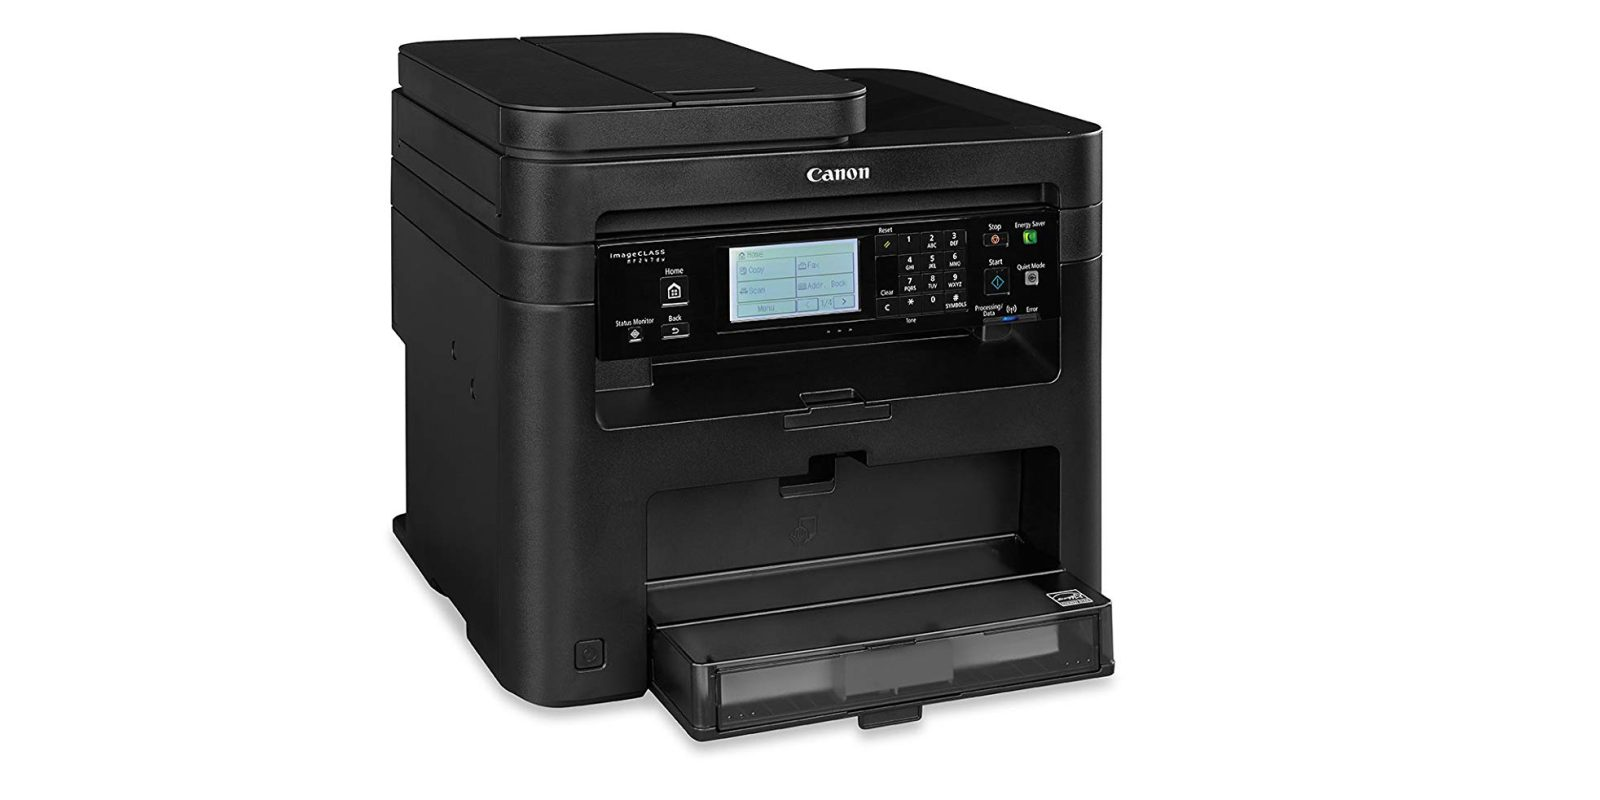 Scan, copy, print and more on Canon's imageCLASS Laser w/ AirPrint for $124 (Reg. $175)